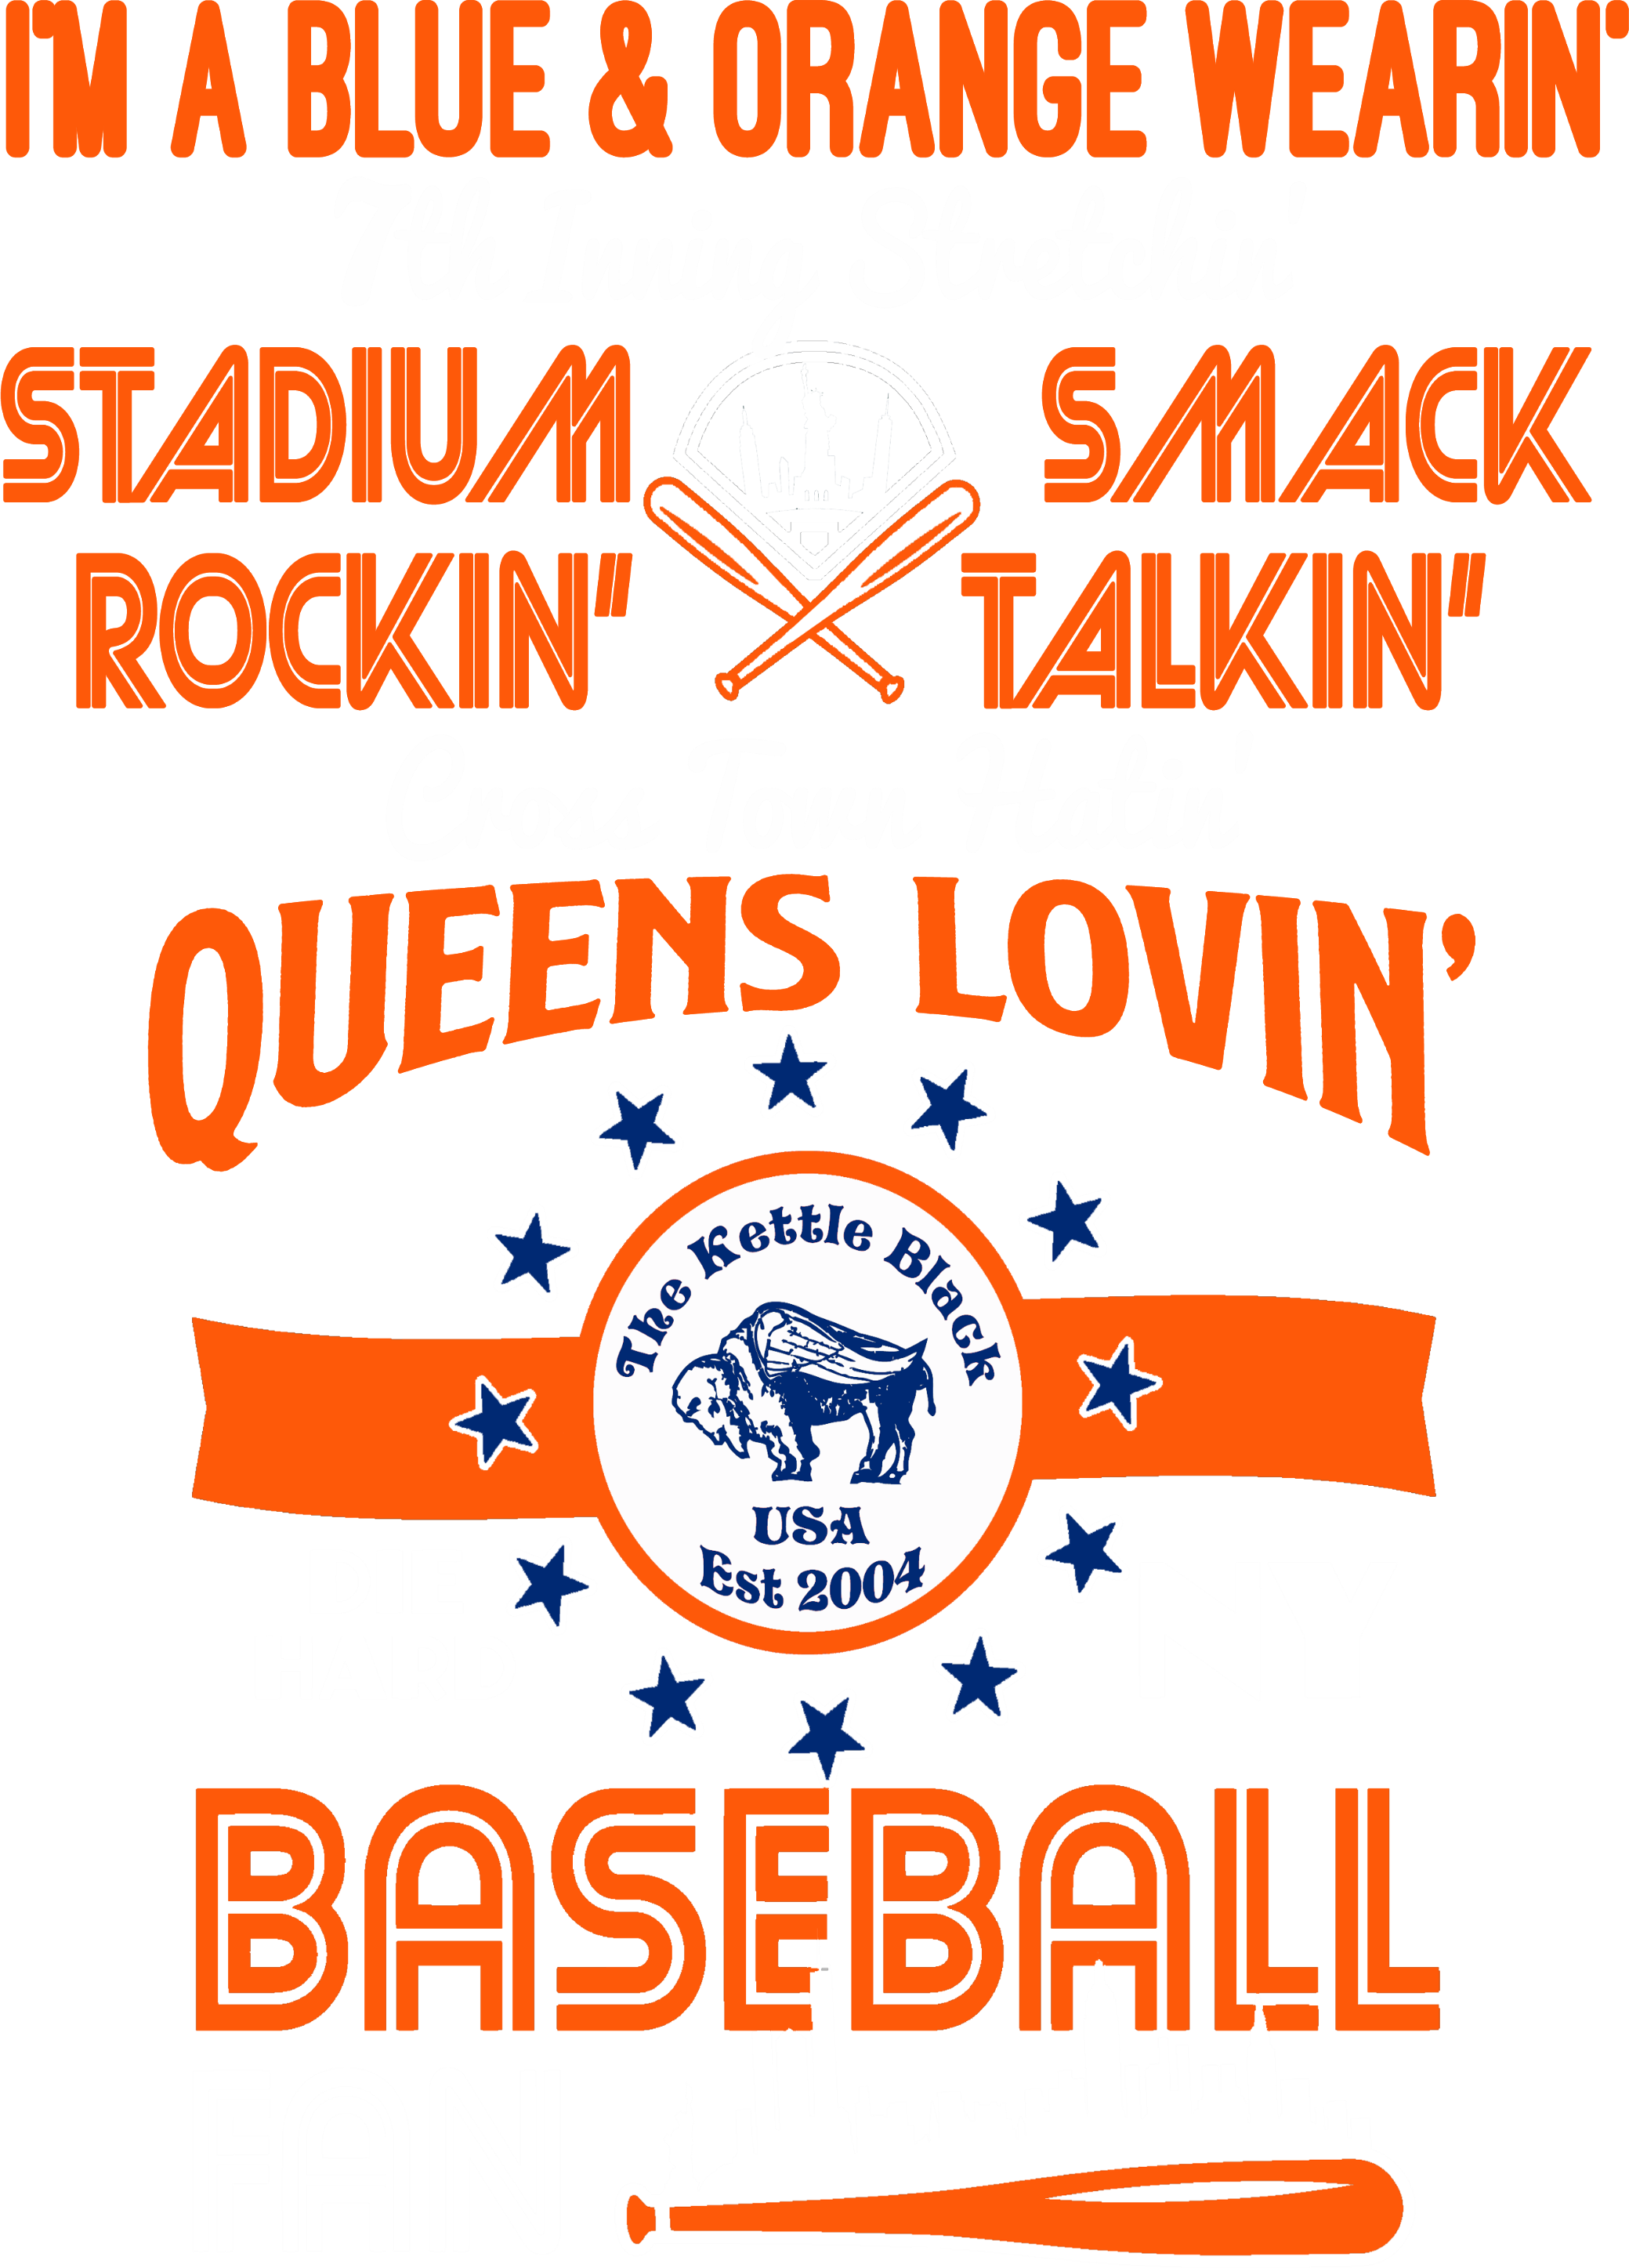 Queens Lovin Baseball Fan